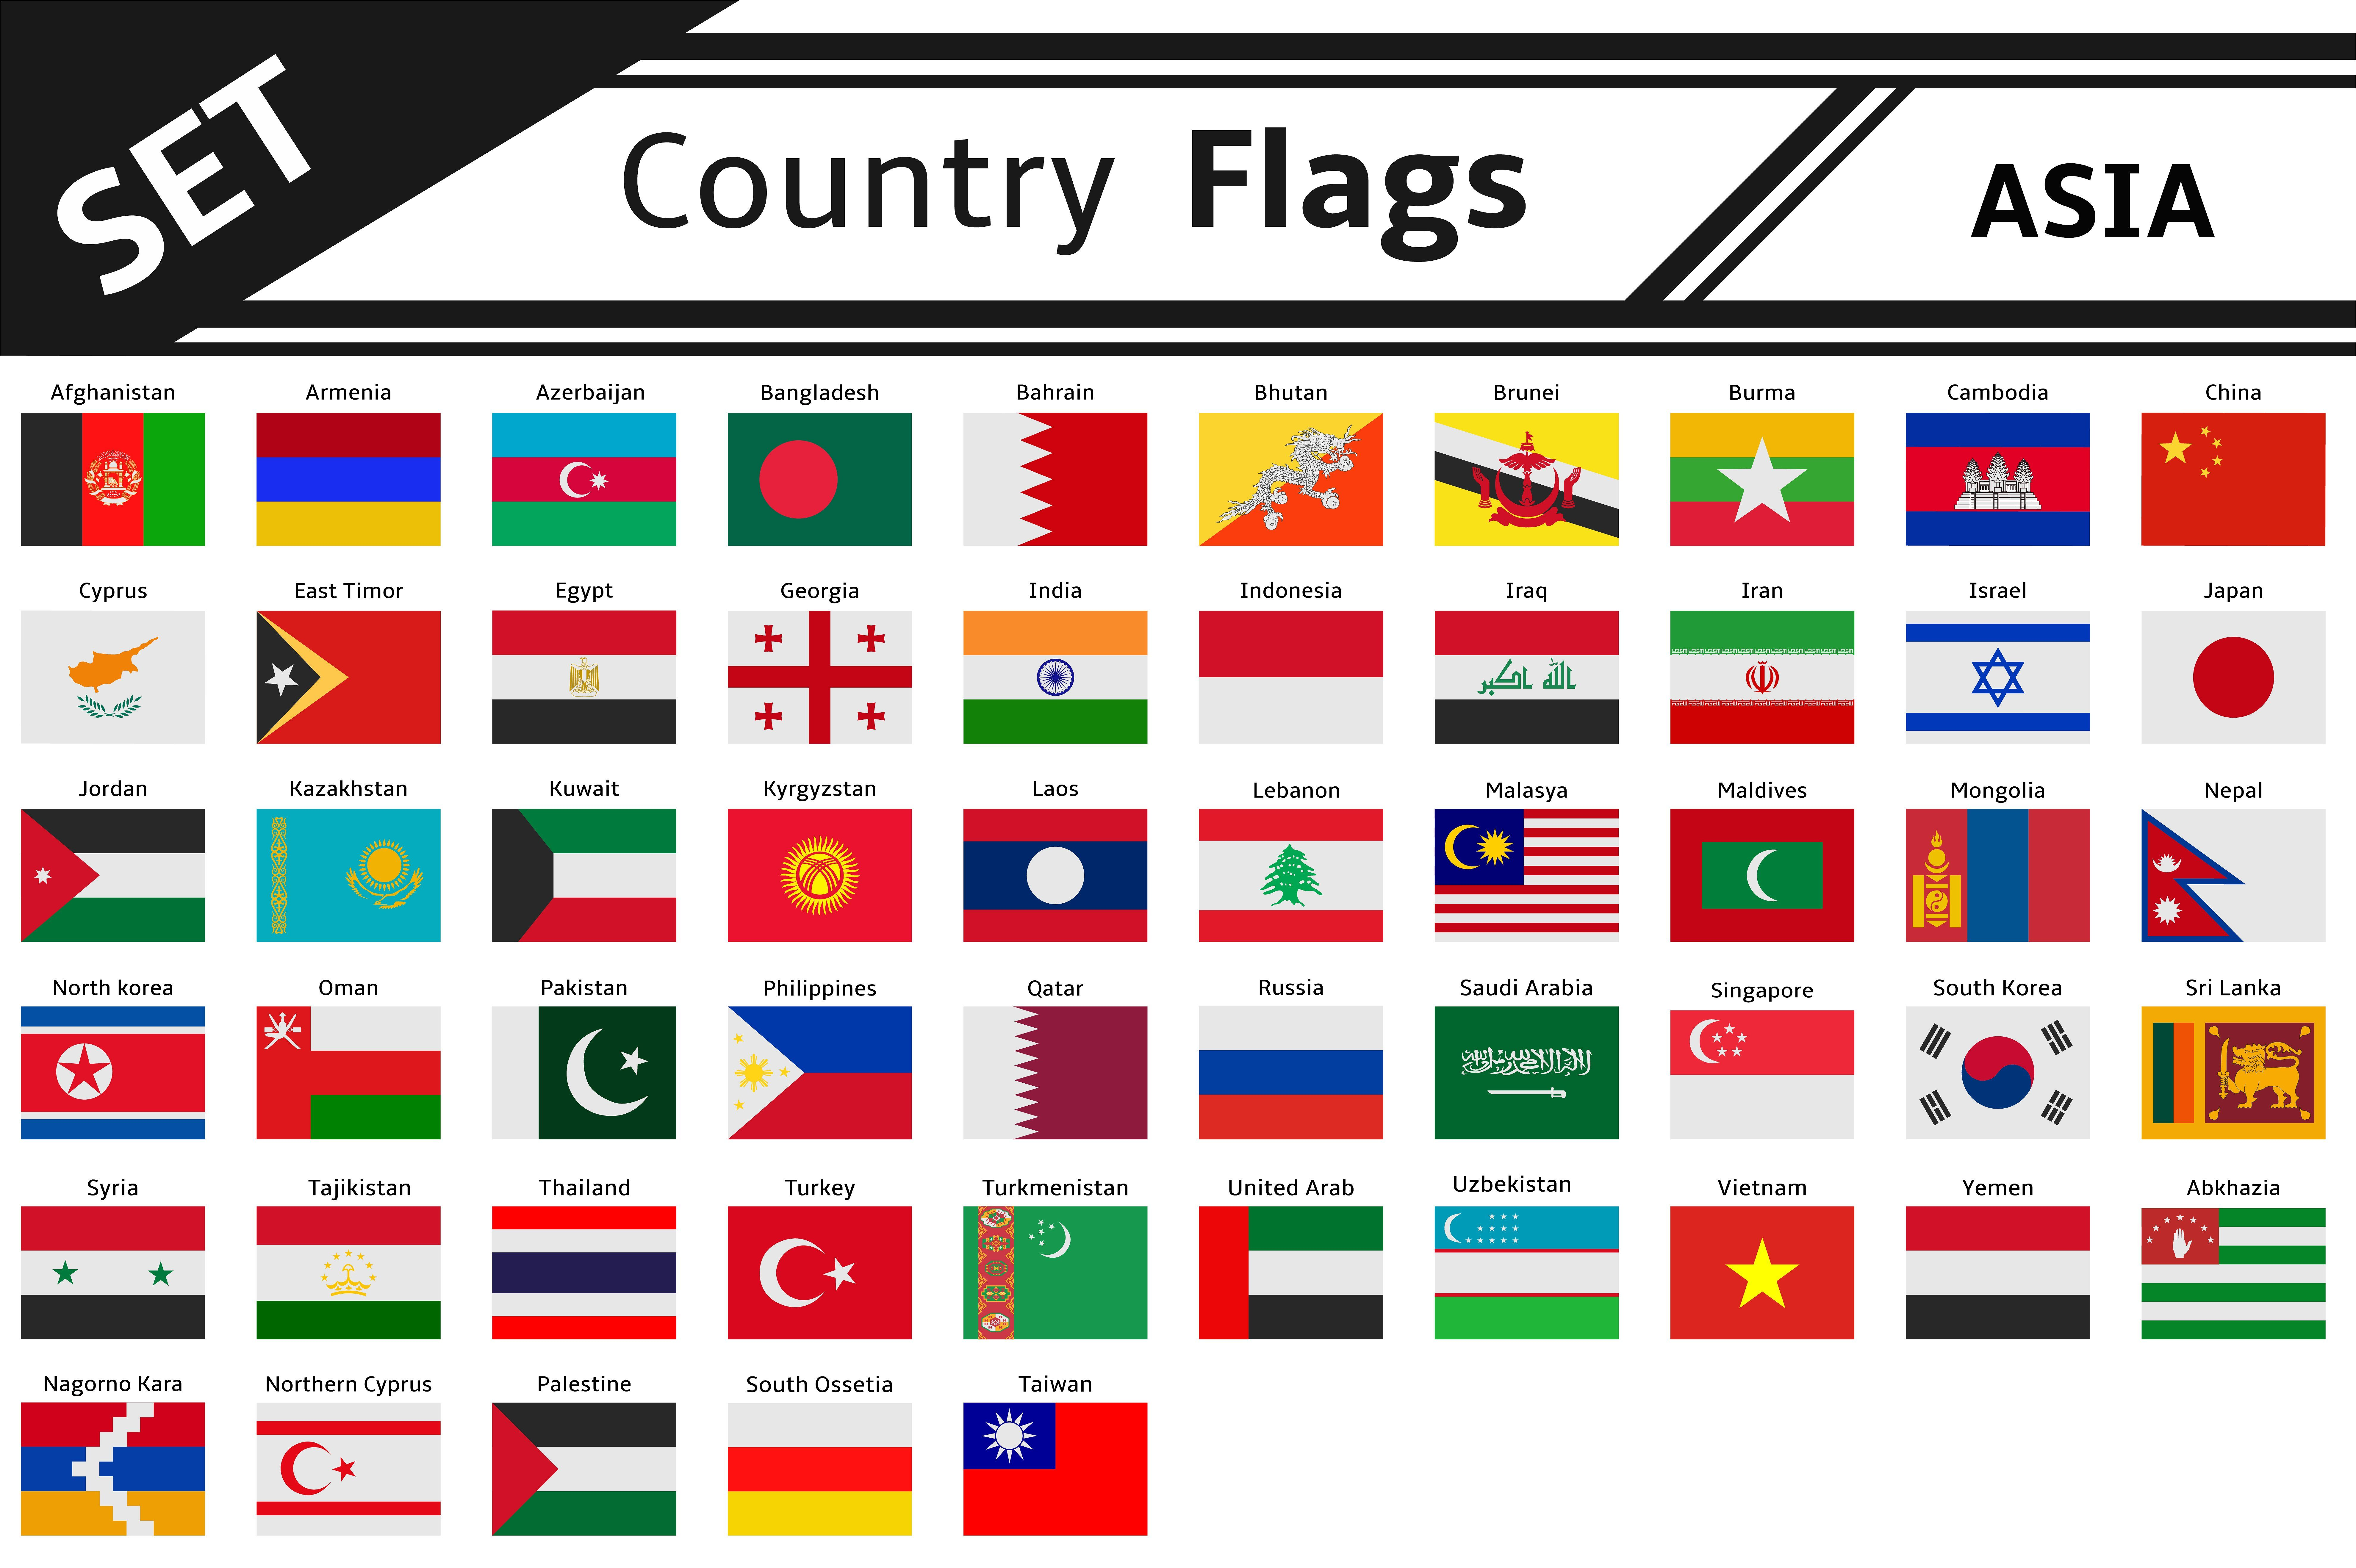 Set Countries Flags Asia Countries And Flags Flag Flags Of The World